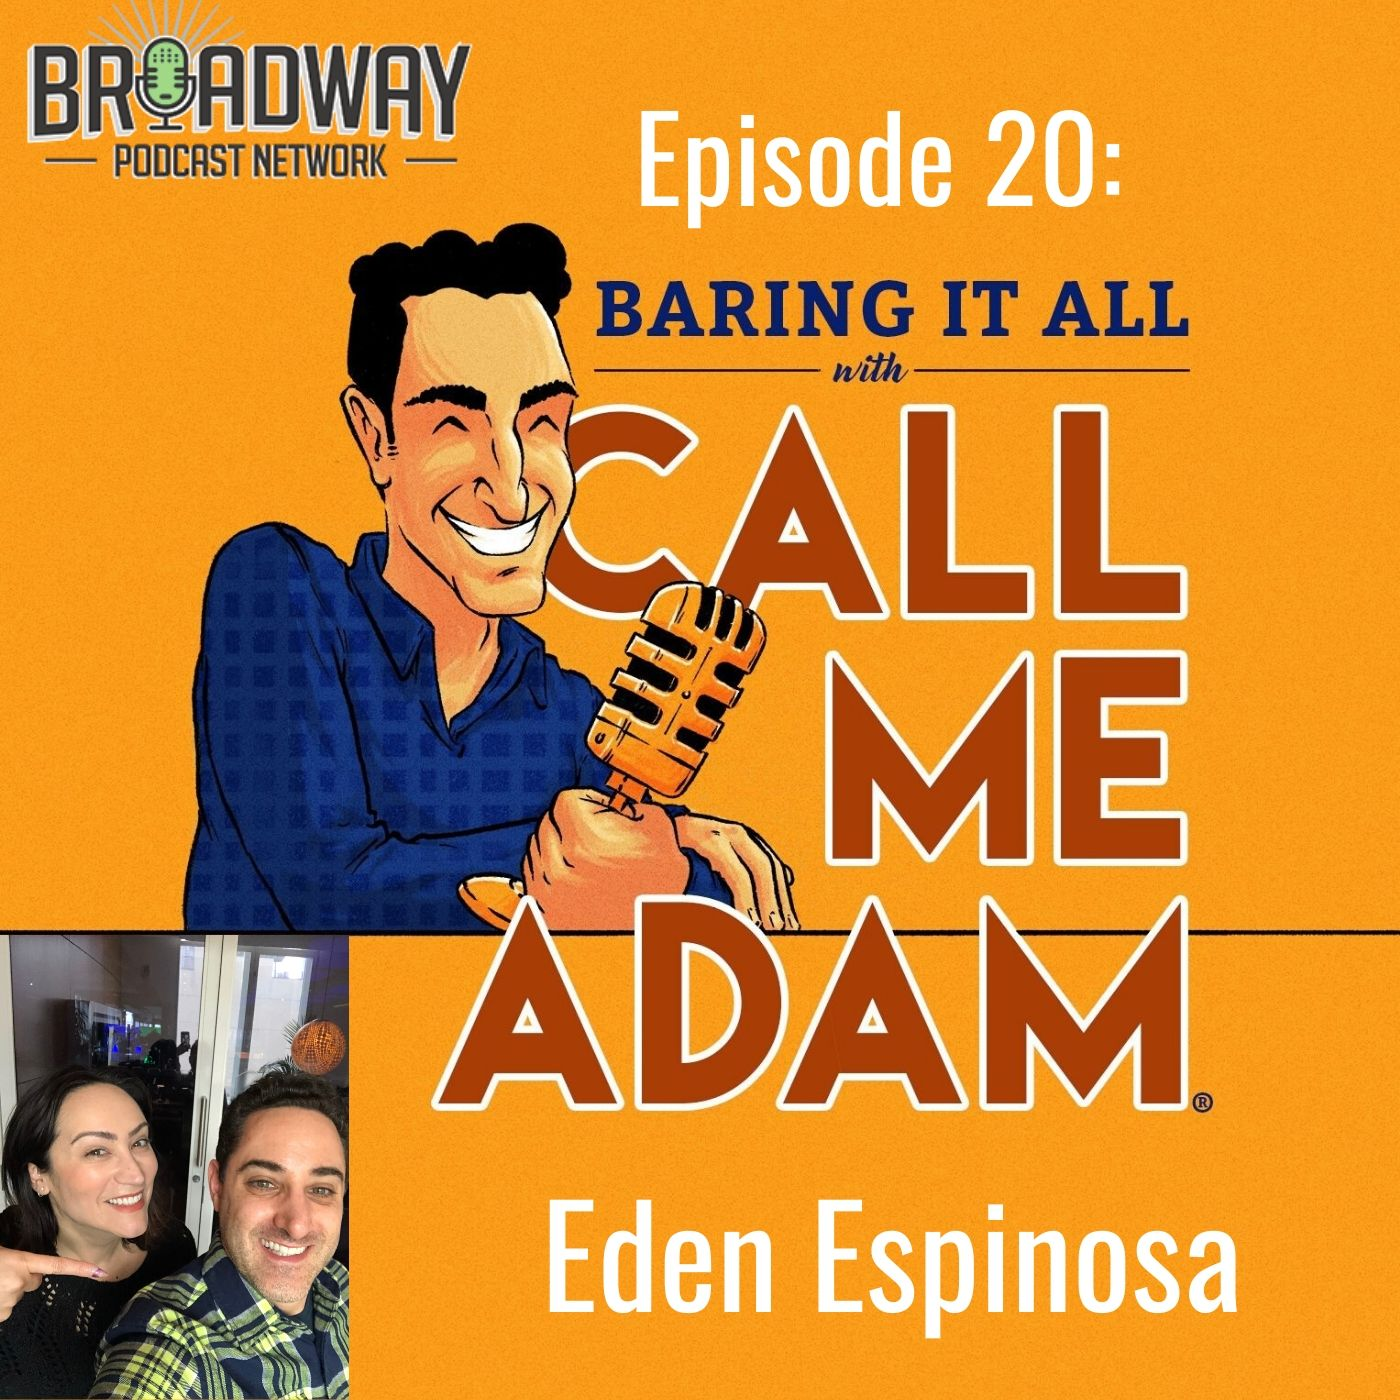 Baring It All With Call Me Adam Ep 20 Eden Espinosa